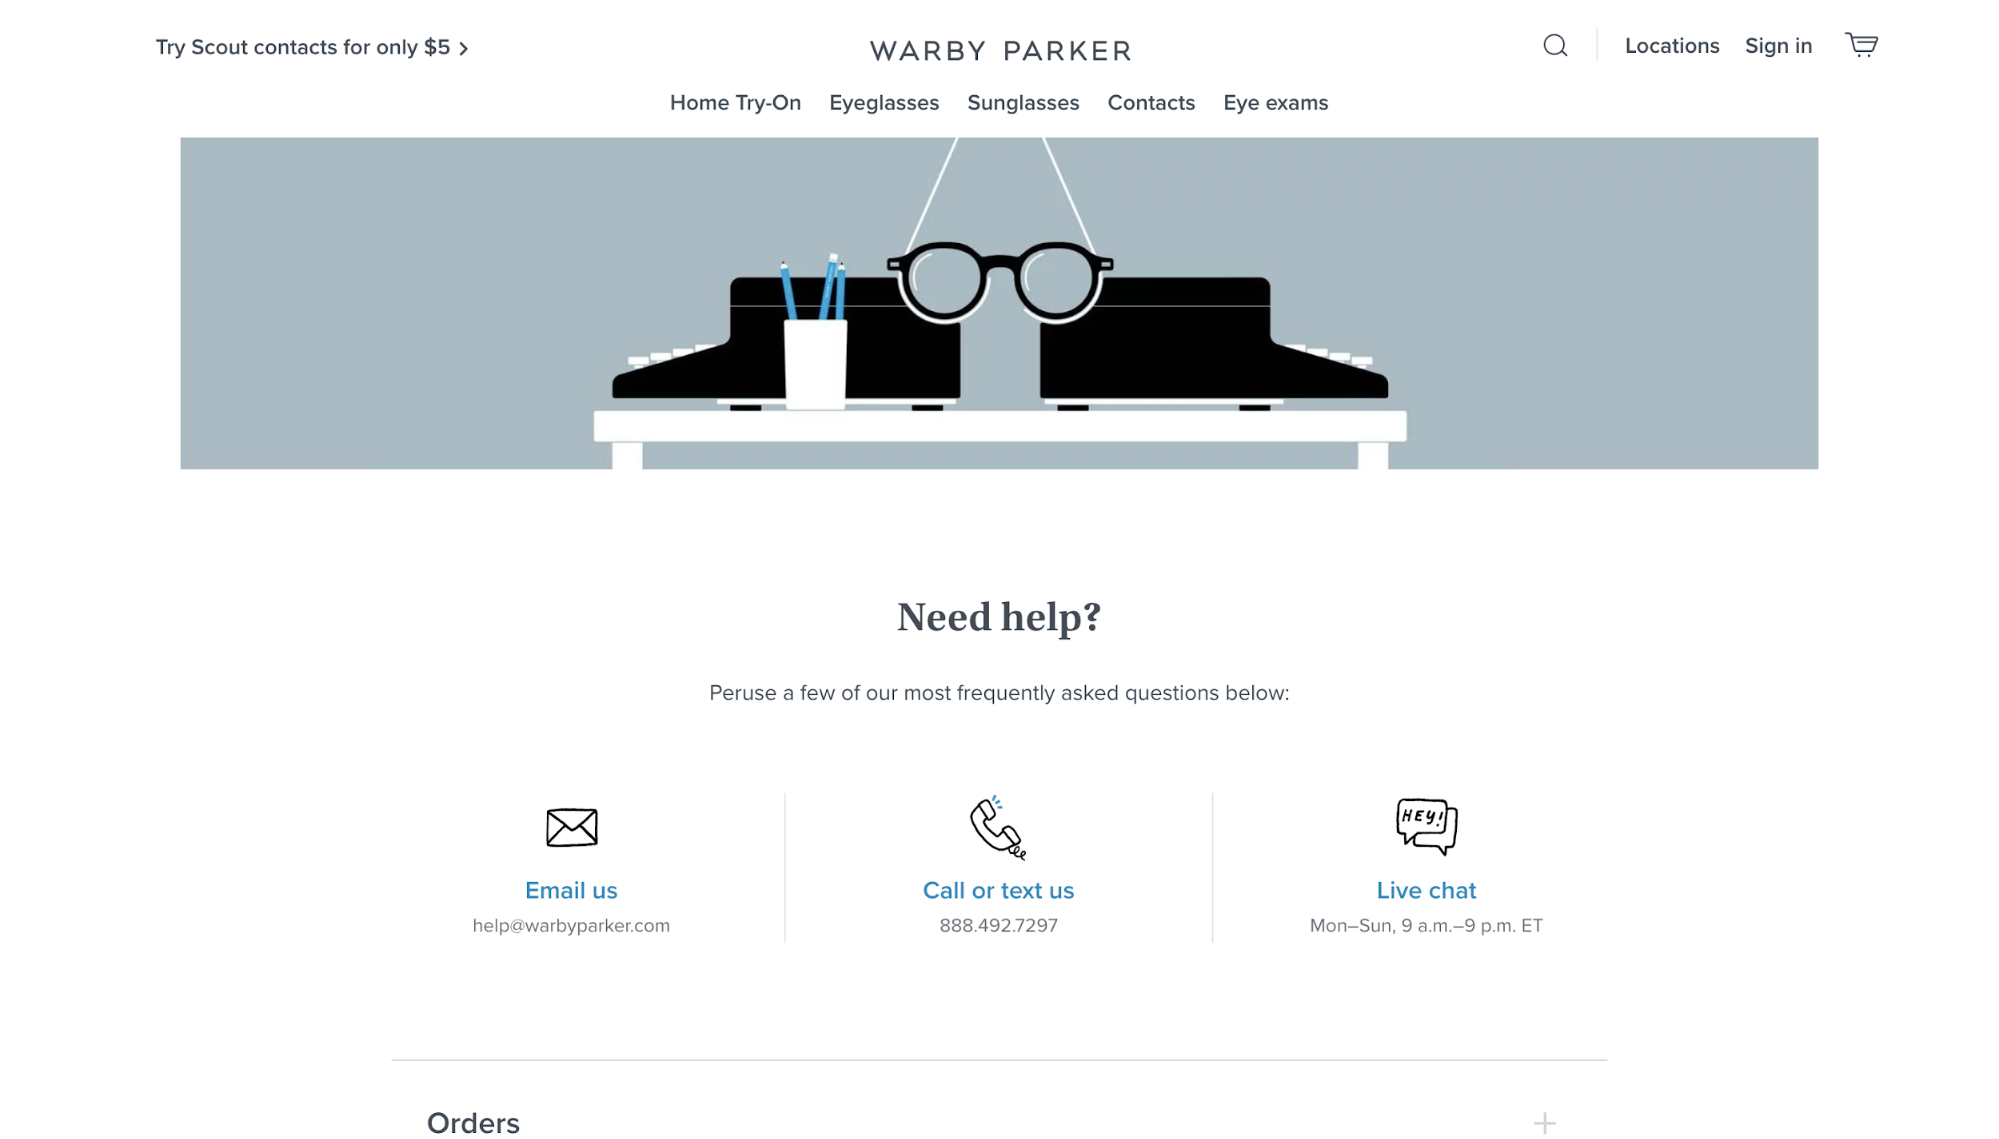 Warby Parker FAQ page